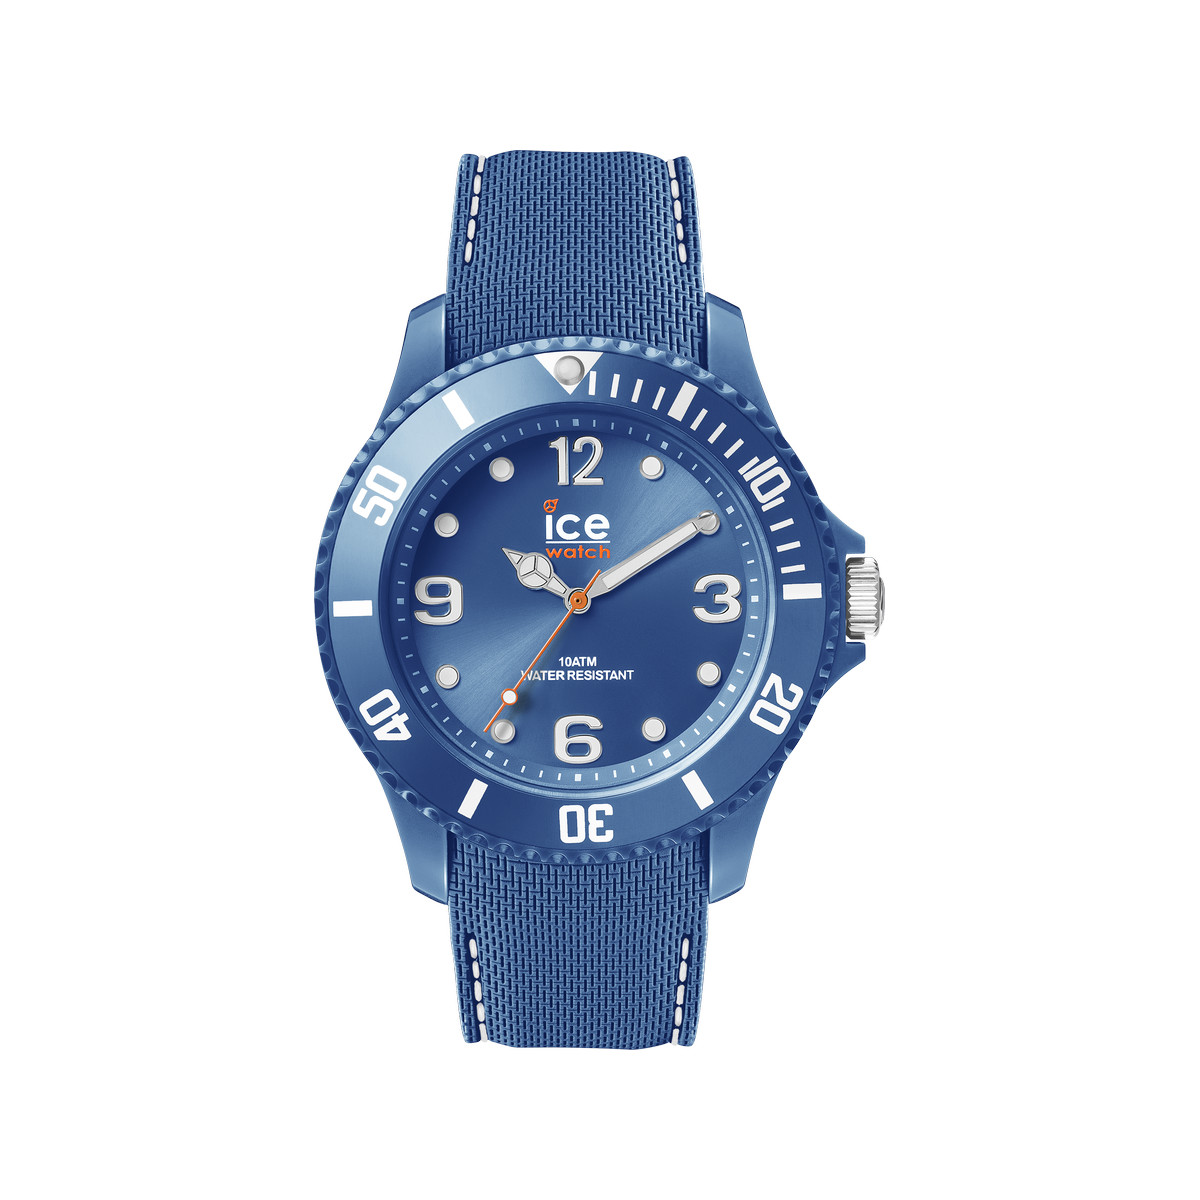 Montre Ice Watch mixte silicone bleu - vue 1